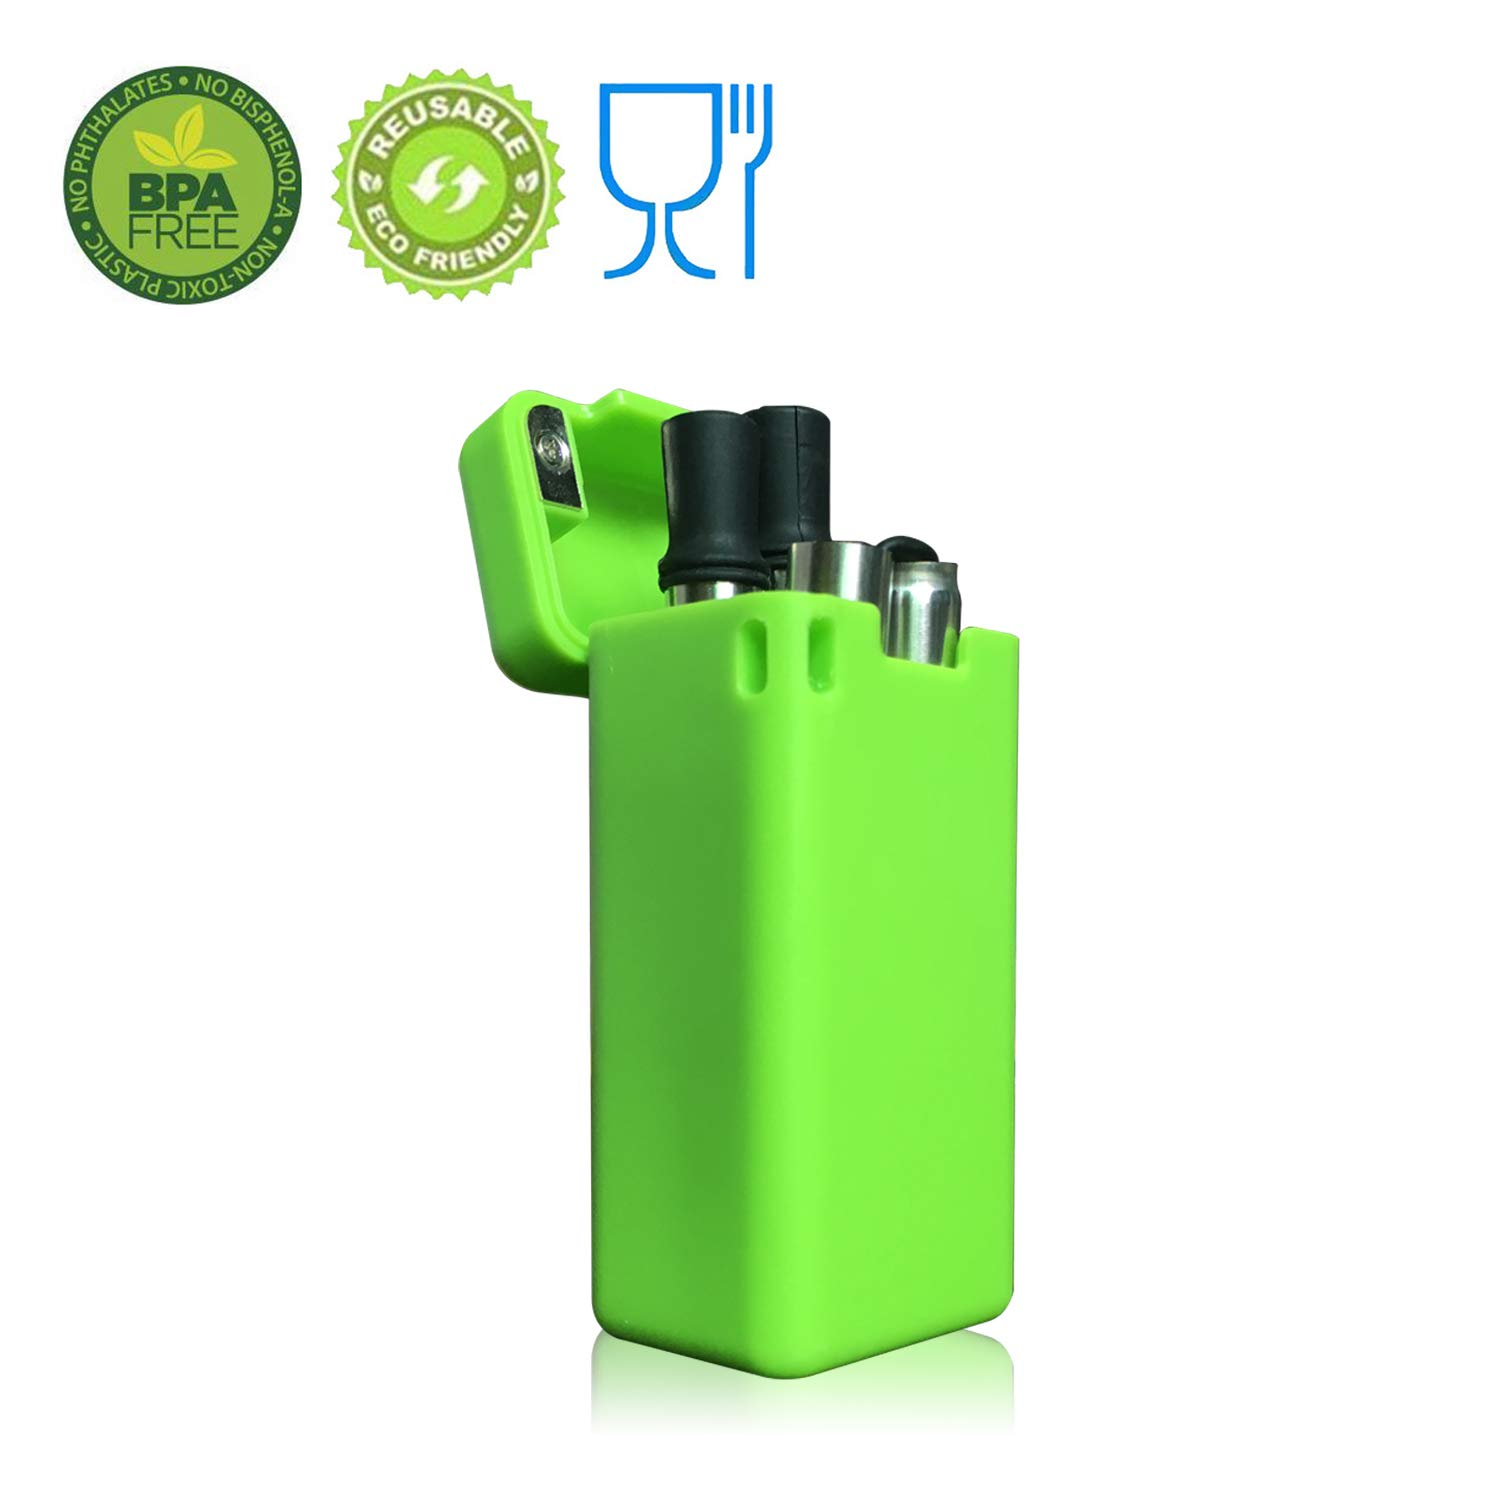 Collapsible Drinking Straw Reusable Folding Safety Raw Materials Meet Medical-Grade Food-Grade Collapsible Portable Stainless Straw with Hard Case Cleaning Brush (Green)